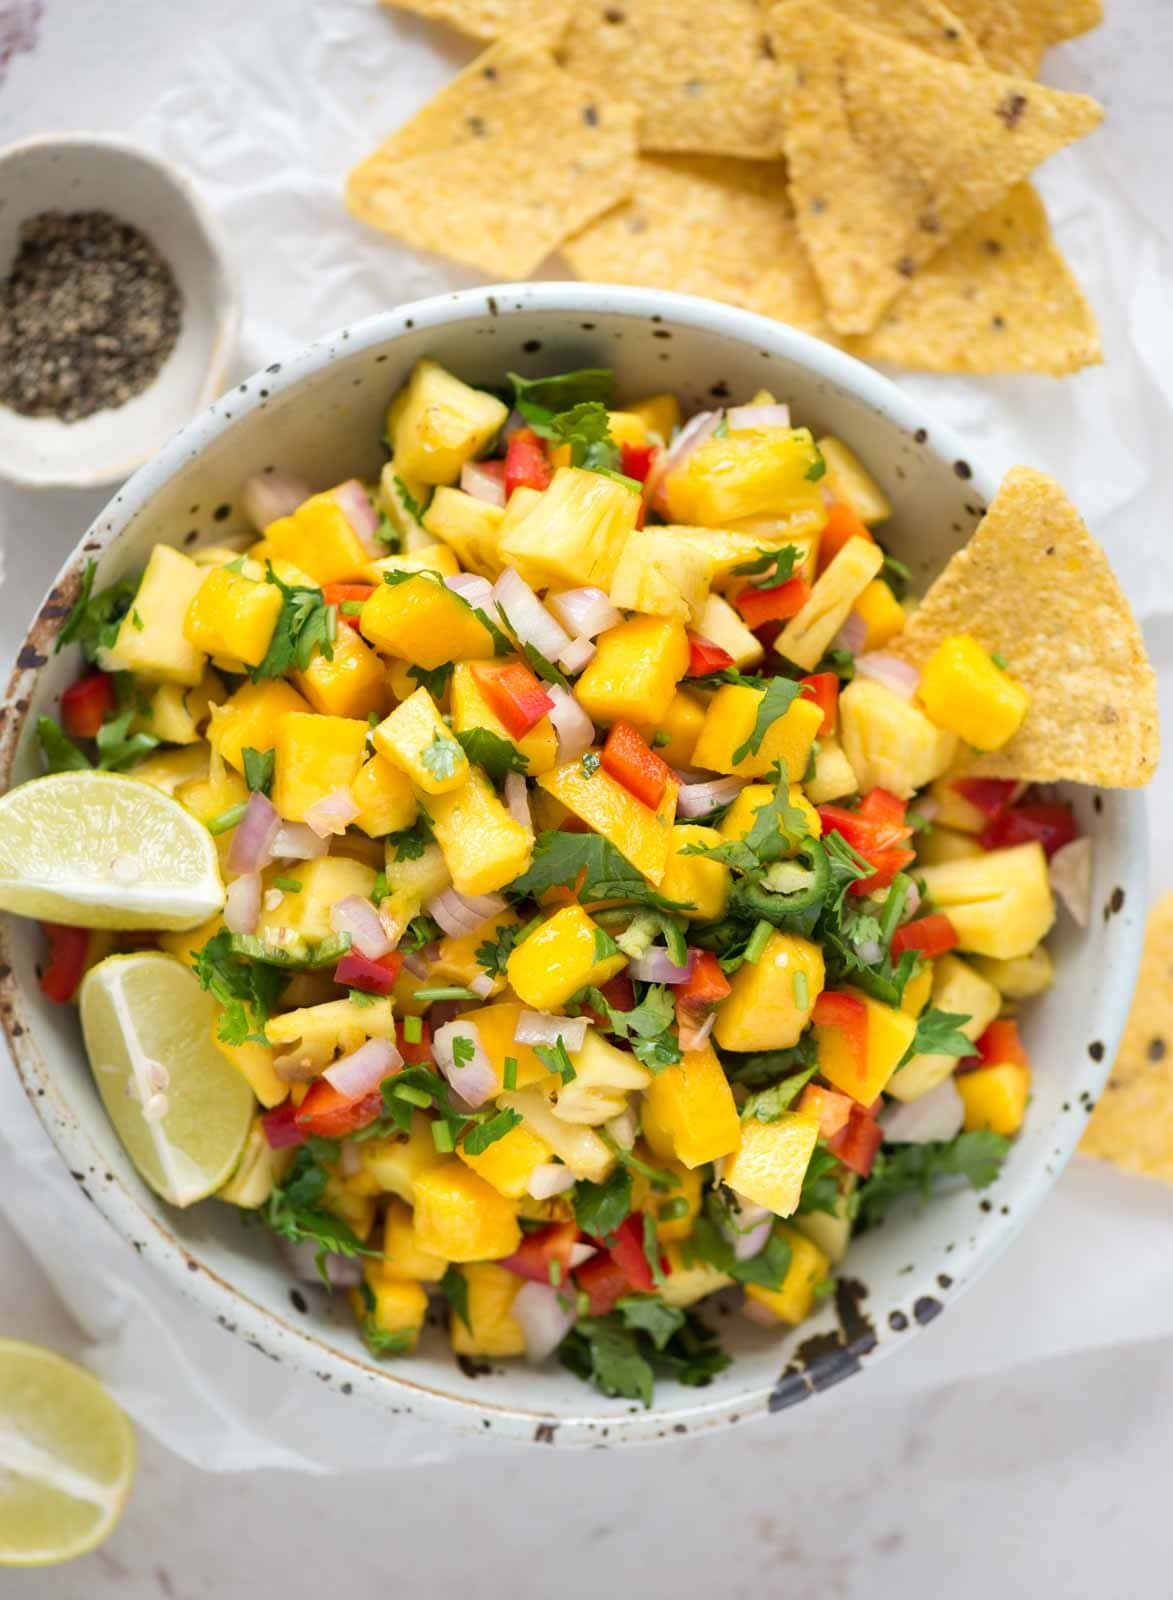 A sweet and spicy super easy salsa recipe that has two yum fruits - pineapple and mango. Pineapple Apple Salasa makes for the perfect summer treat with chips.